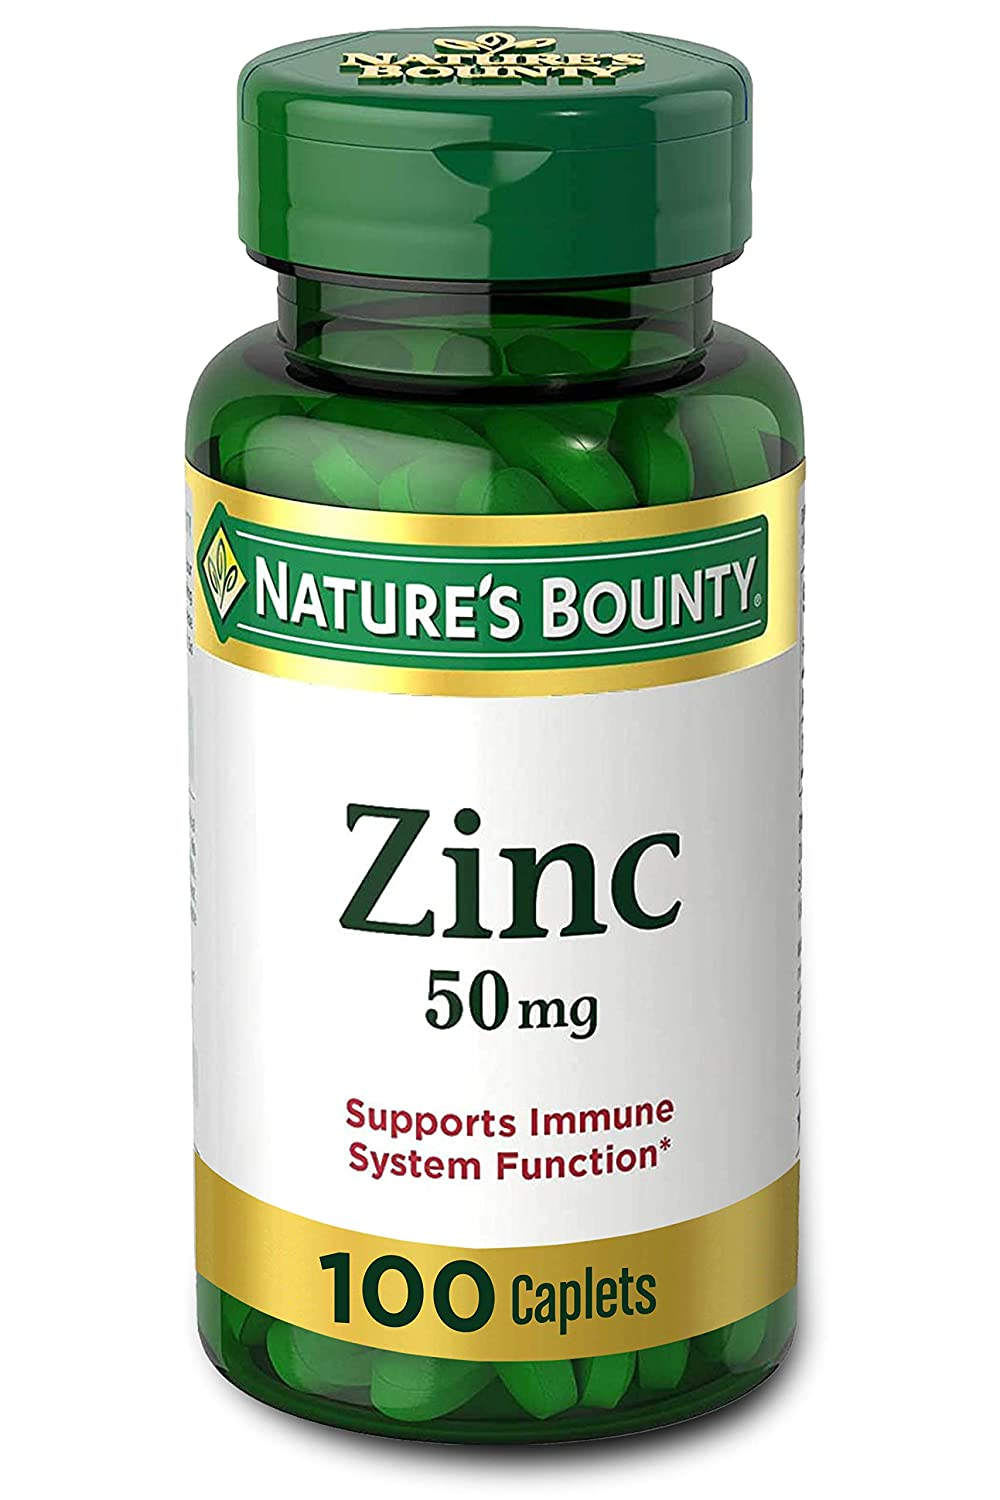 Natures Bounty Zinc 50mg - 100 Caplets